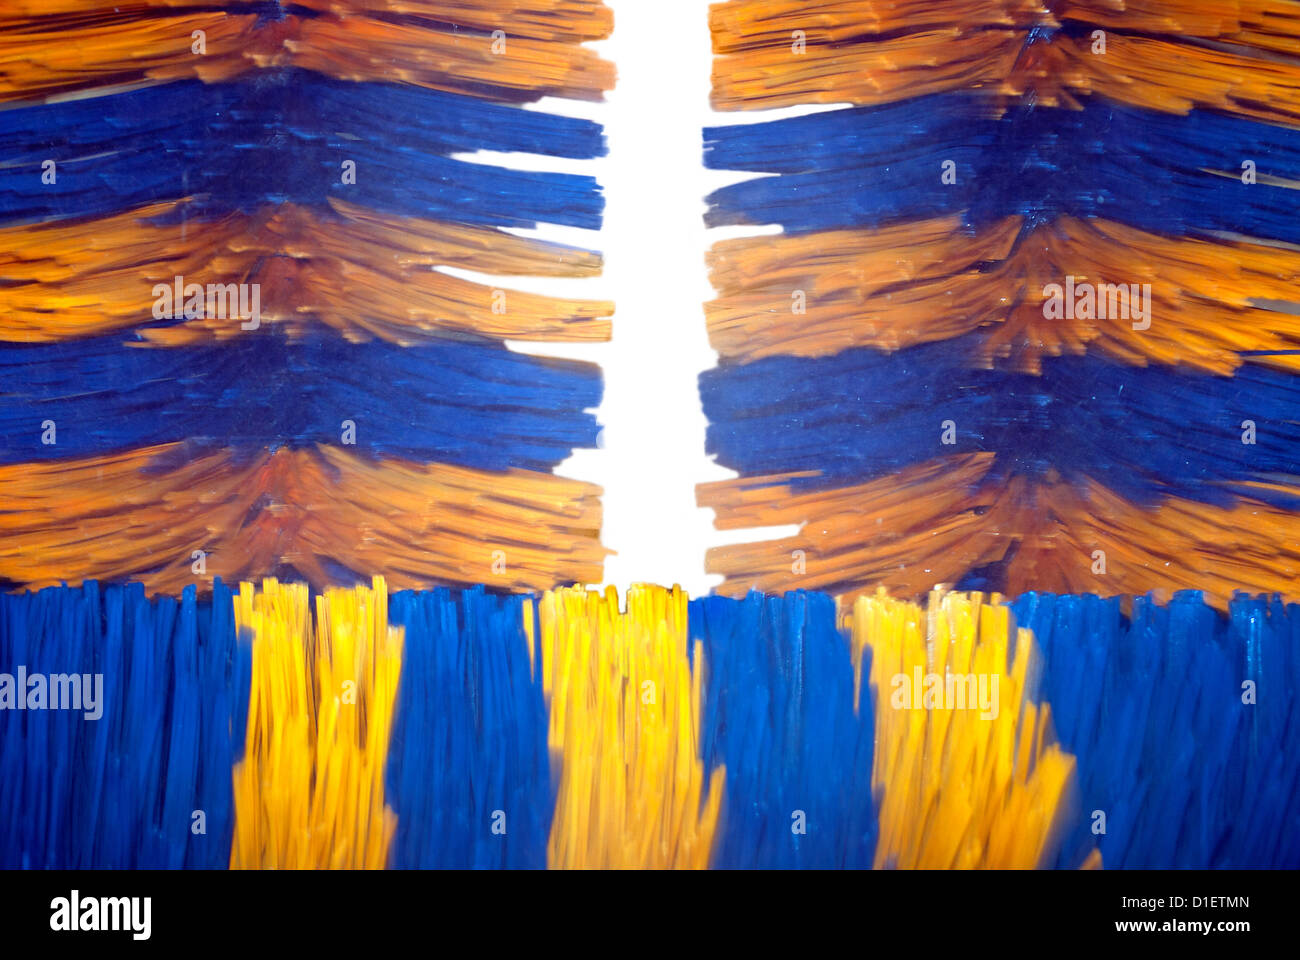 Close up of automatic car wash brushes. Blurred because of spinning brushes - Stock Image